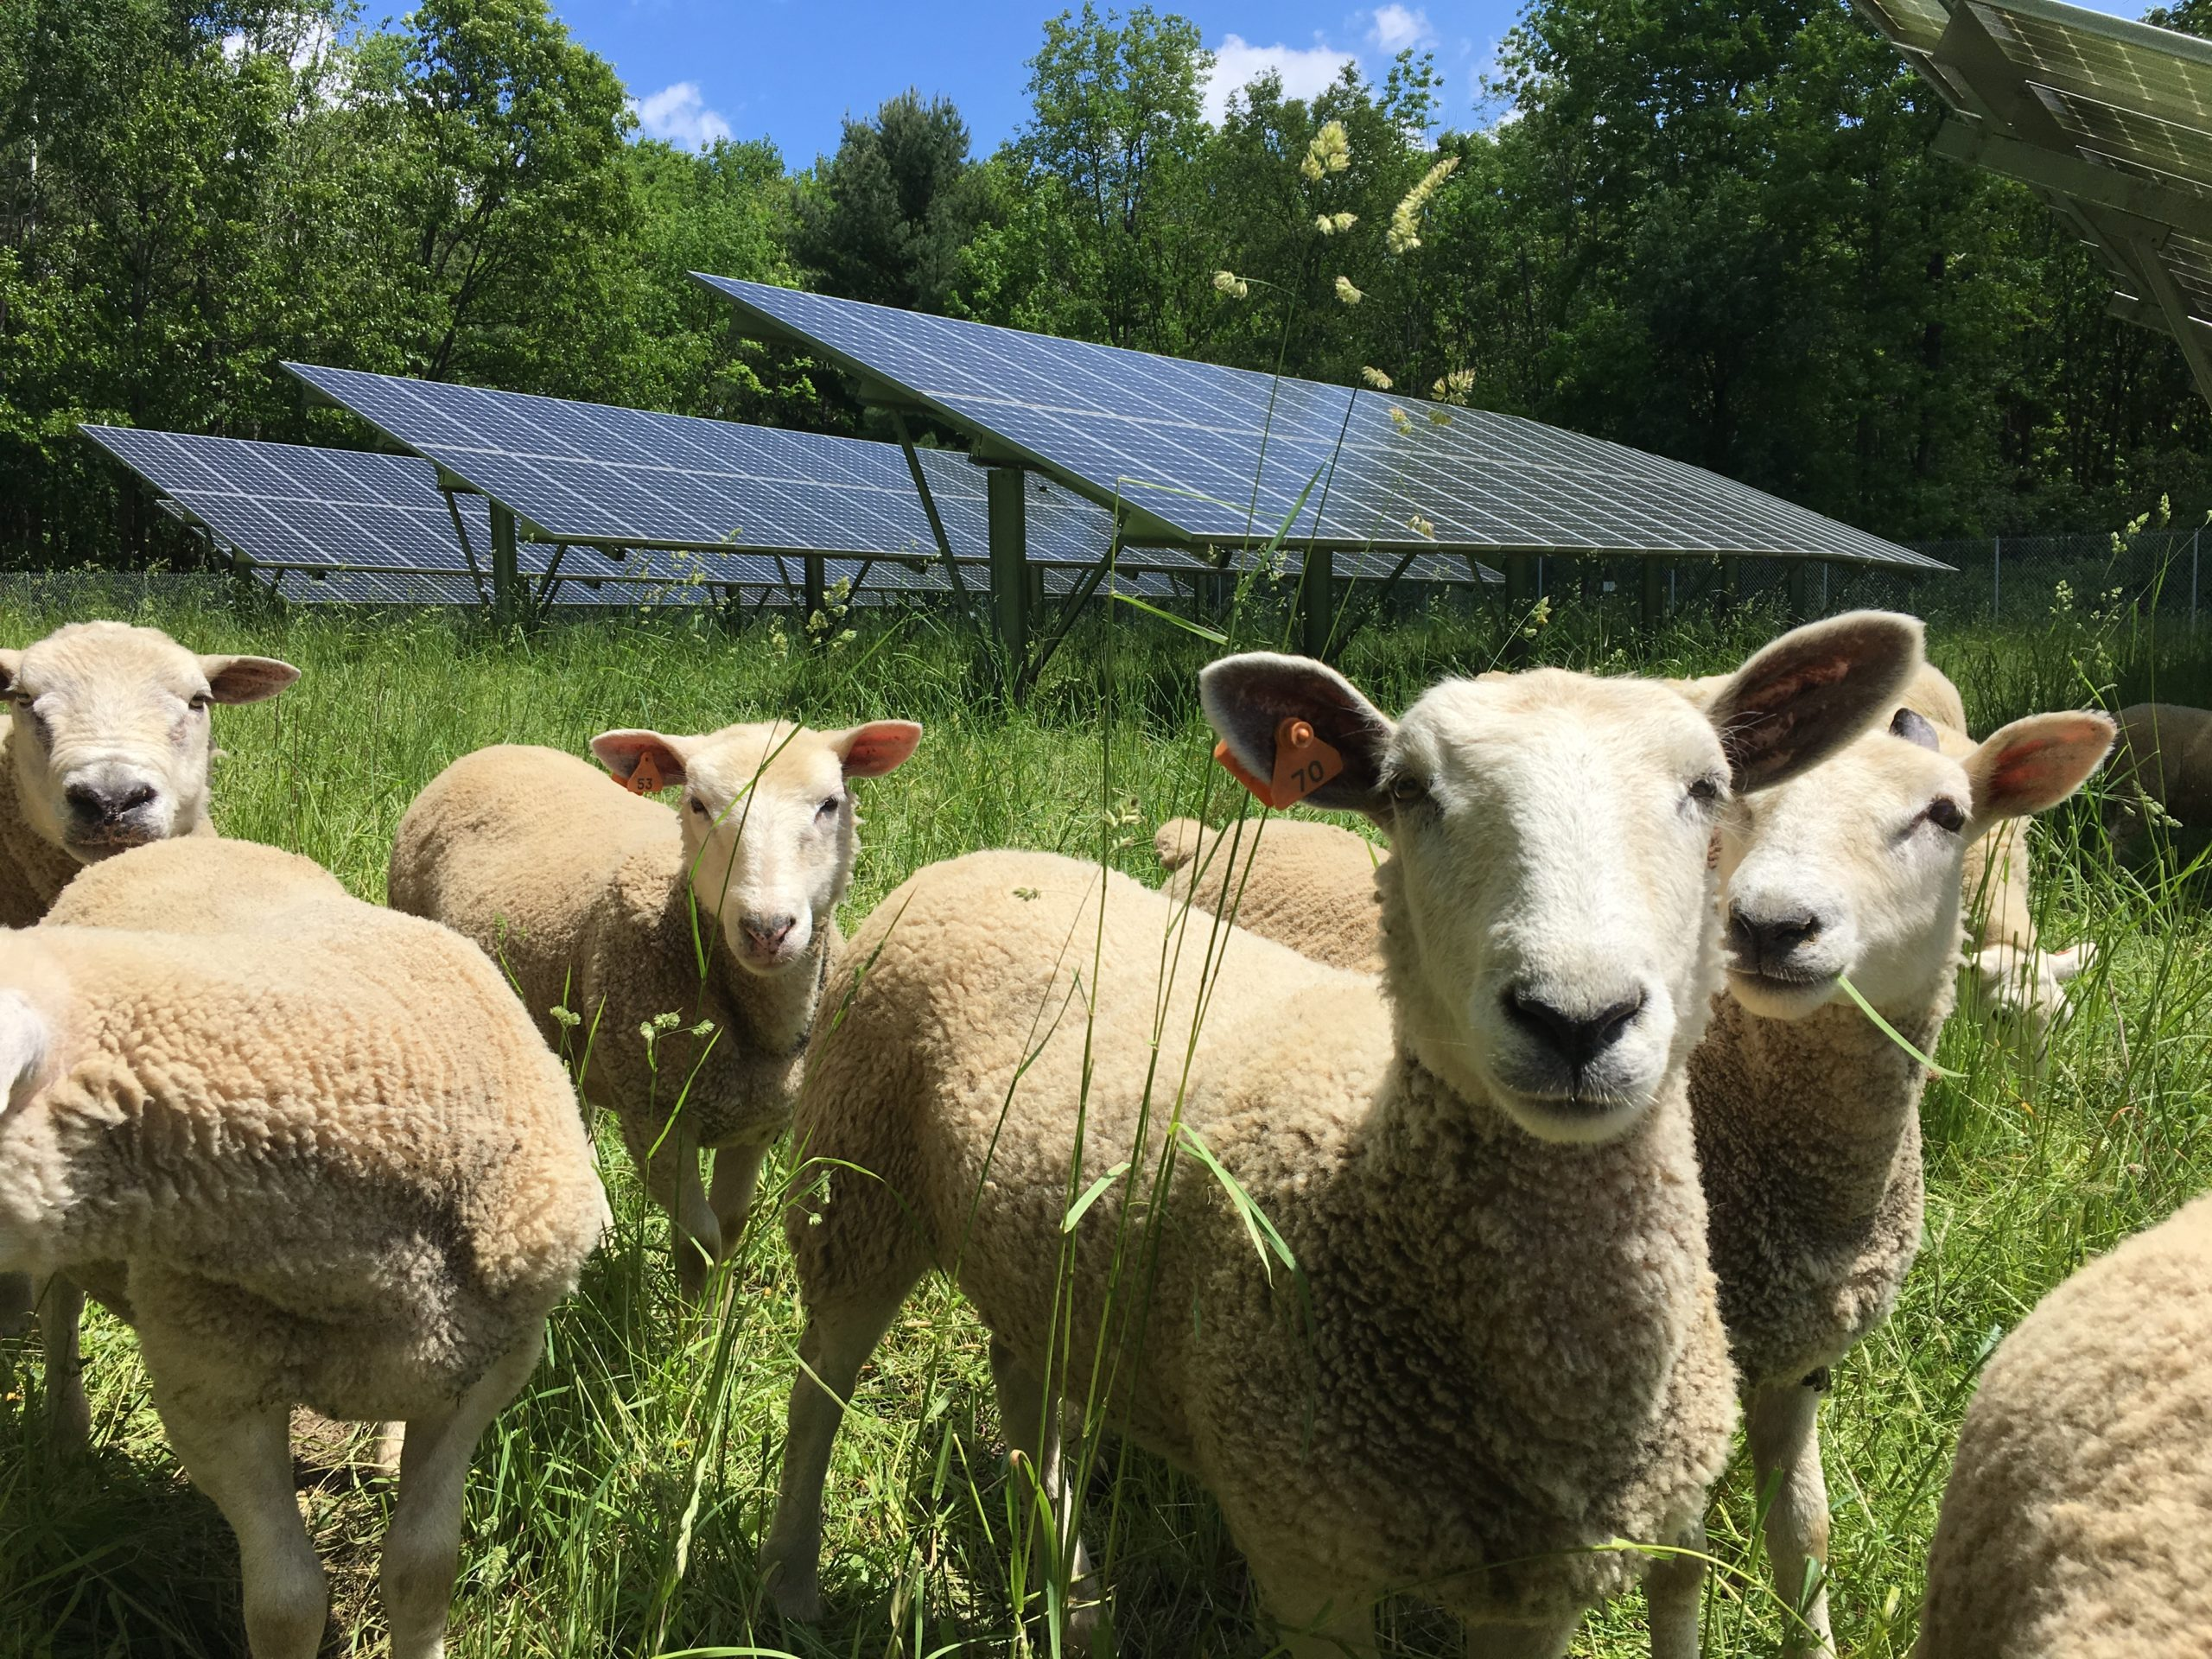 A flock of sheep stand in a pasture with solar panels in the background.